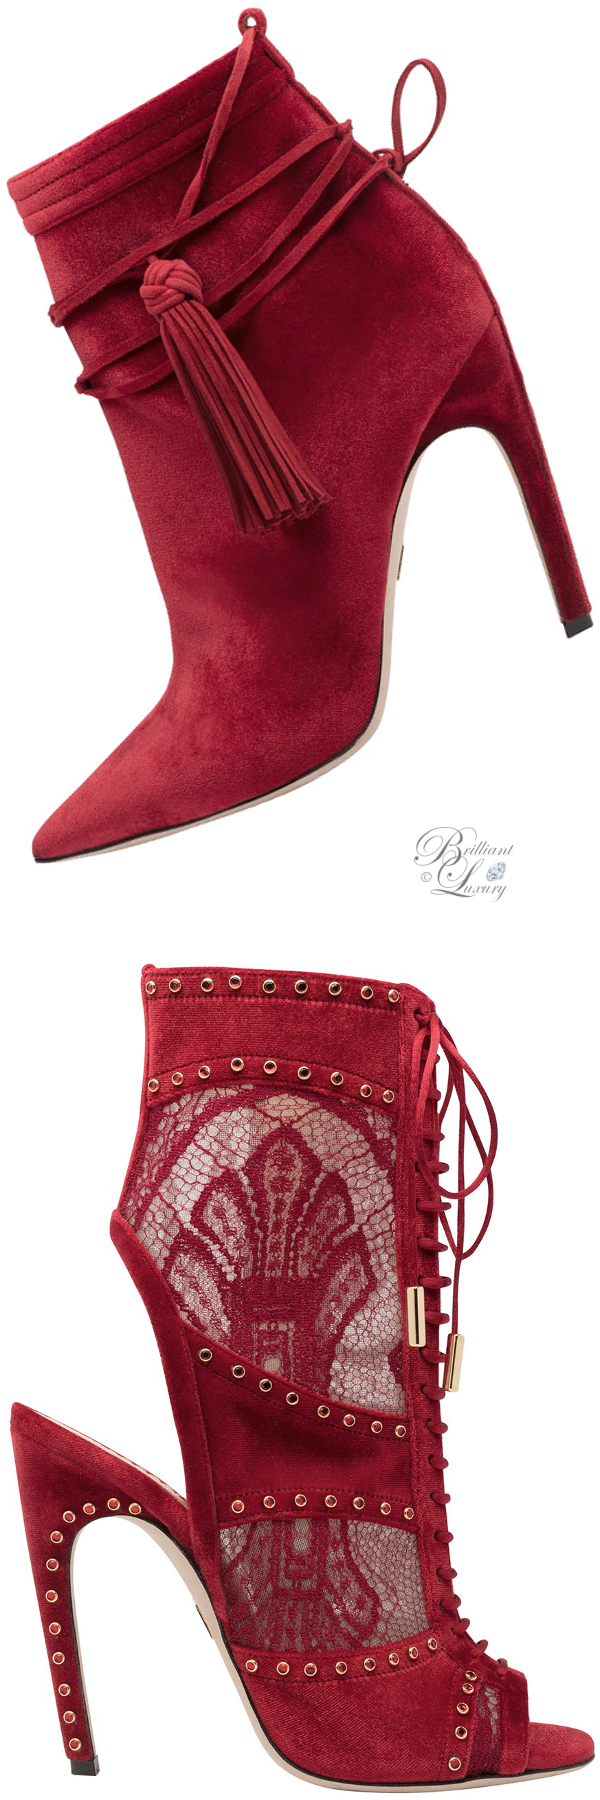 Zuhair Murad booties in red